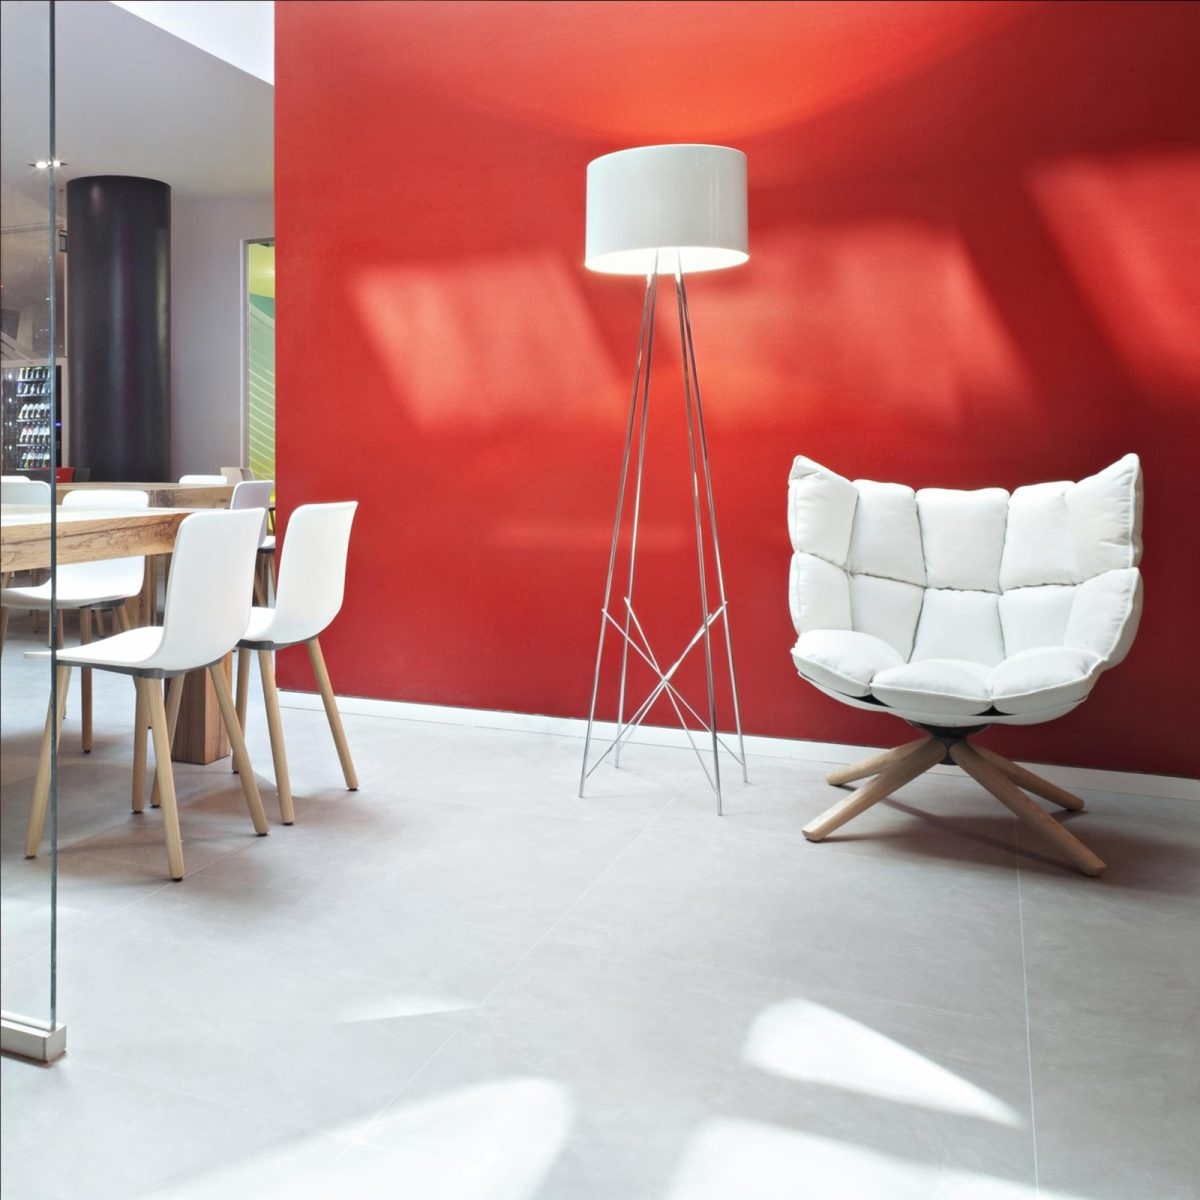 ray-f1-f2-floor-lamp-flosw